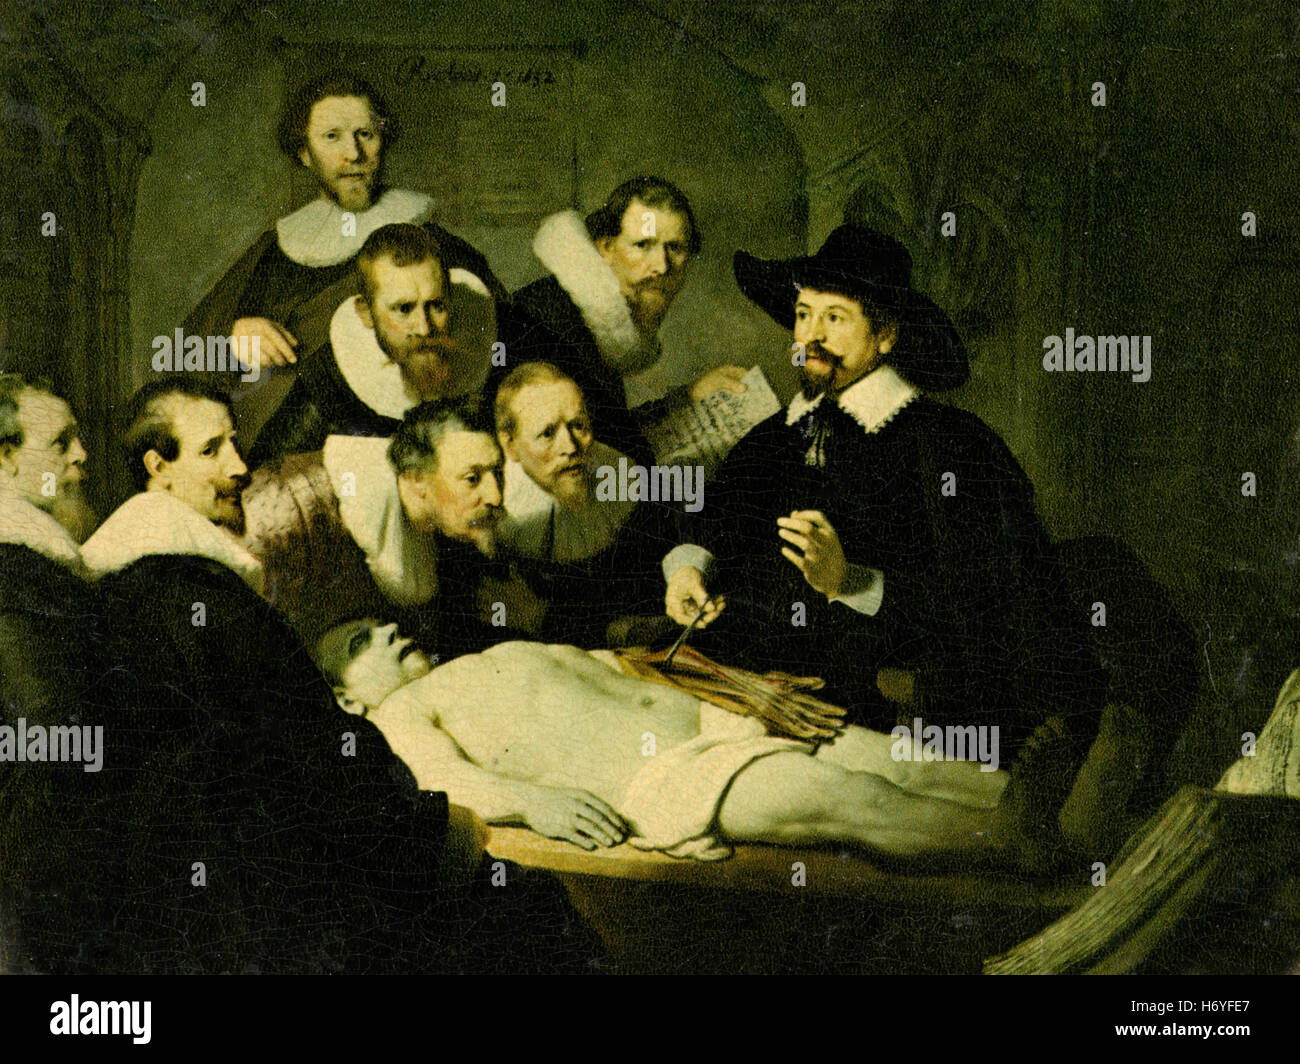 Anatomy Lesson, Rembrandt painting - Stock Image